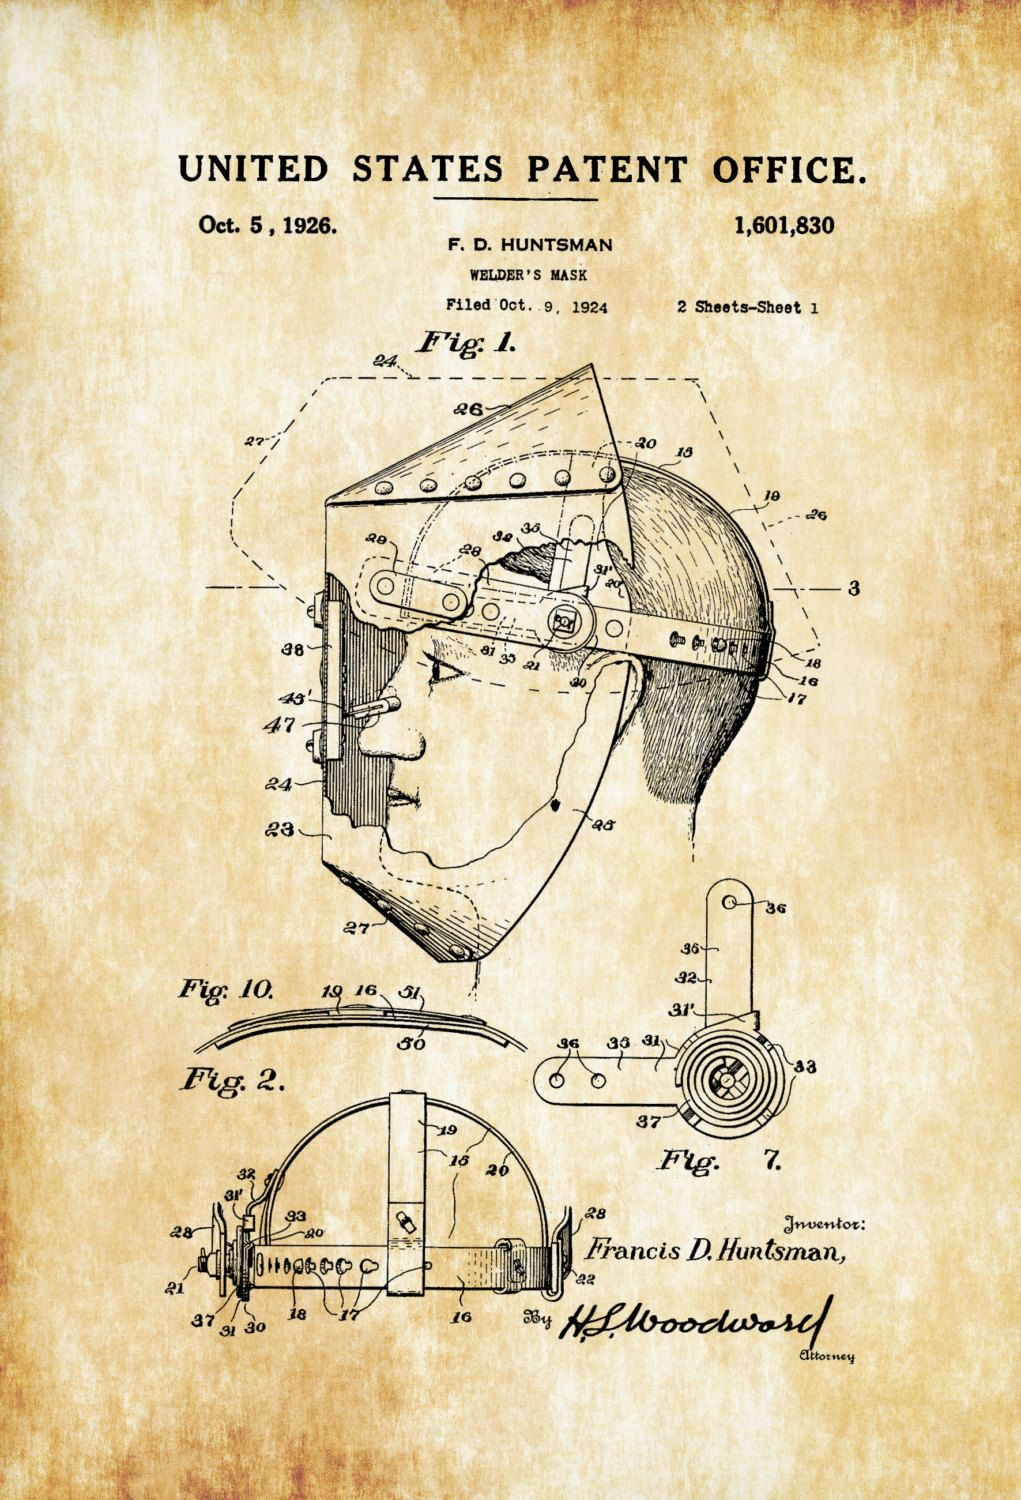 hight resolution of a patent print poster of a welder s mask invented by f d huntsman the patent was issued by the united states patent office on october 5 1926